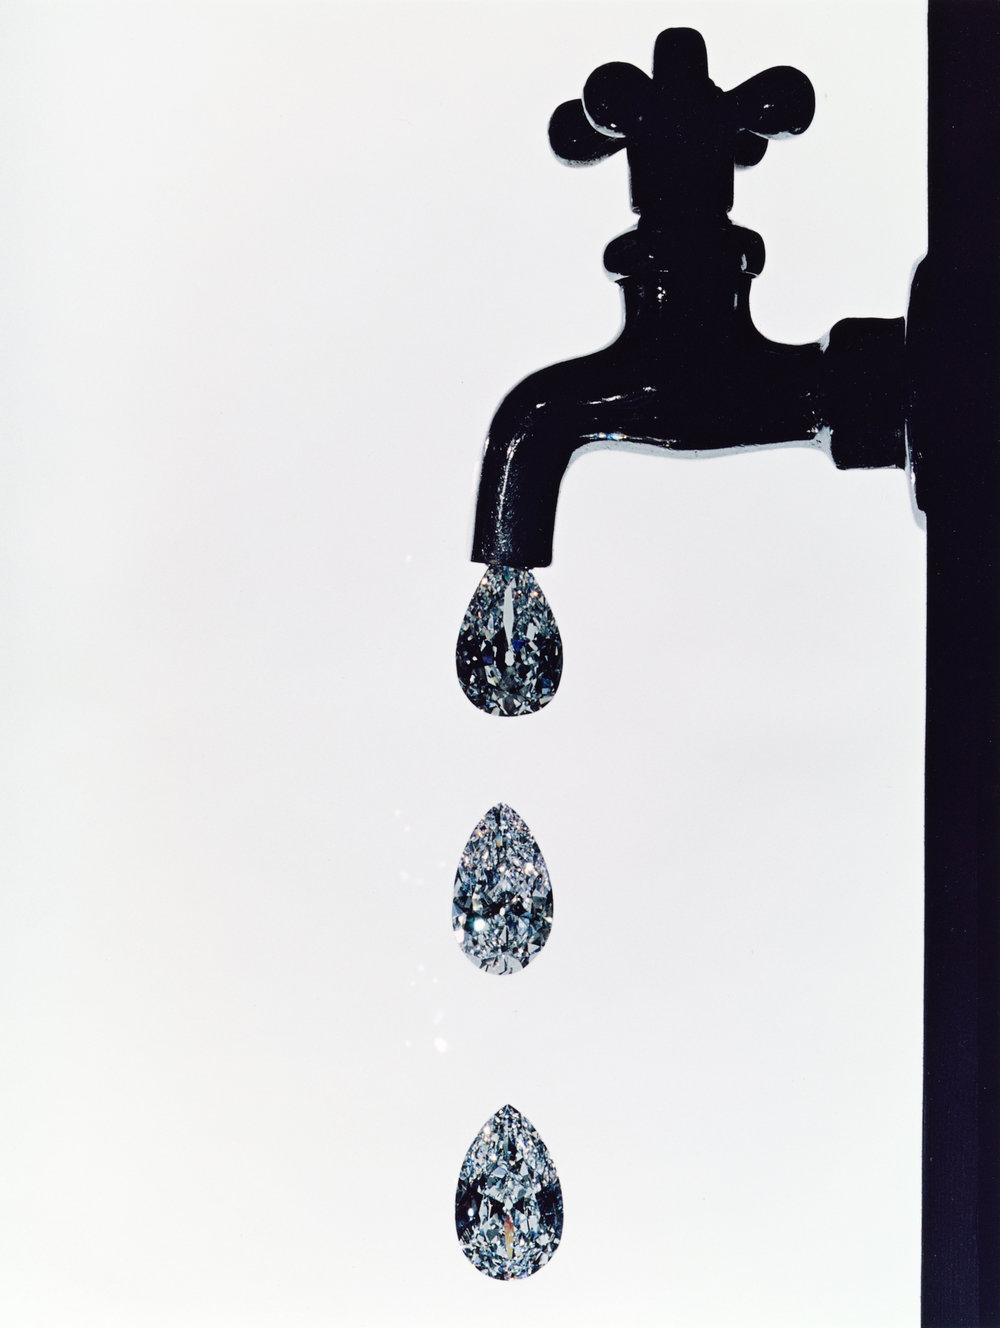 Faucet Dripping Diamonds , New York, 1963 Dye transfer print © Condé Nast